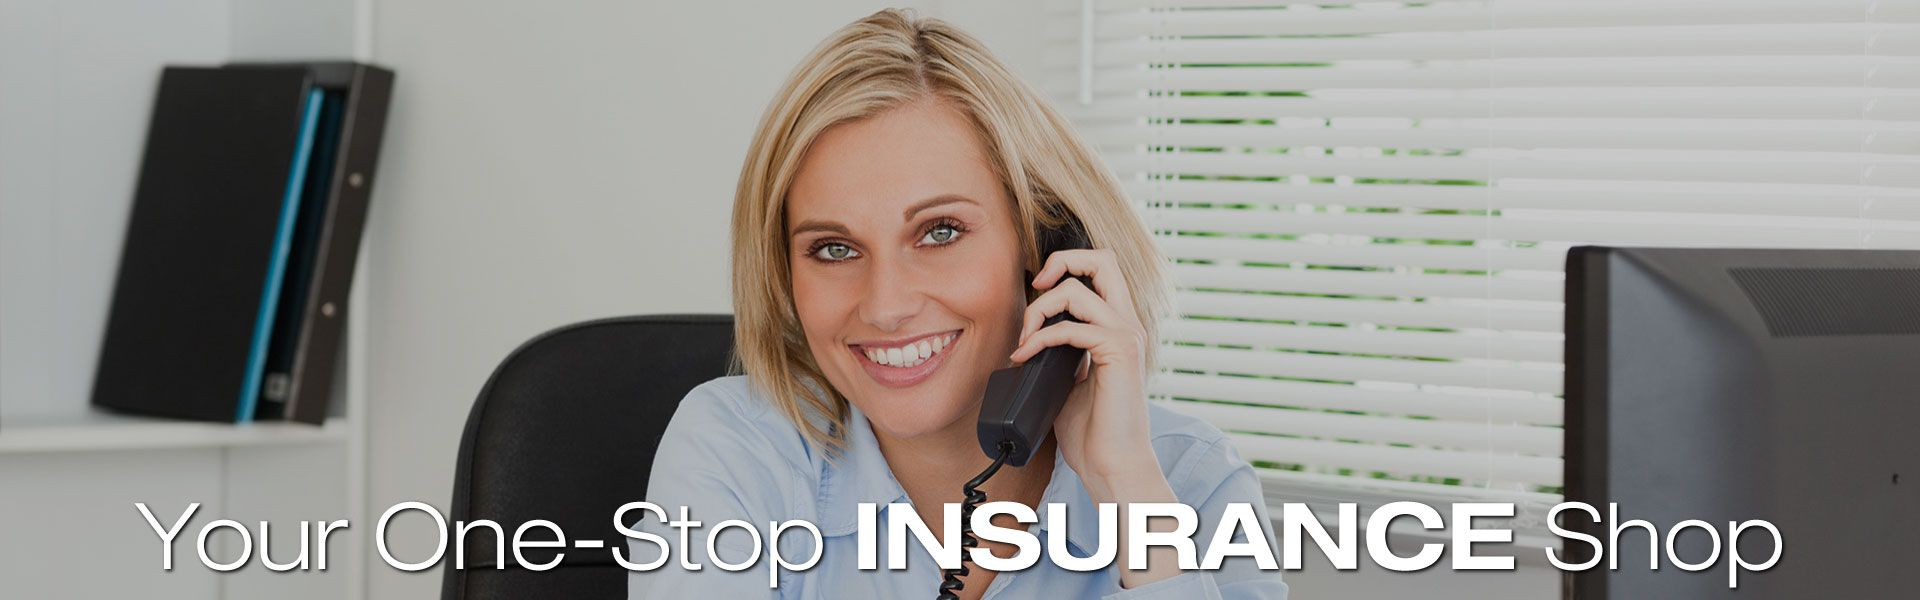 Your One-Stop Insurance Shop | Woman on the phone